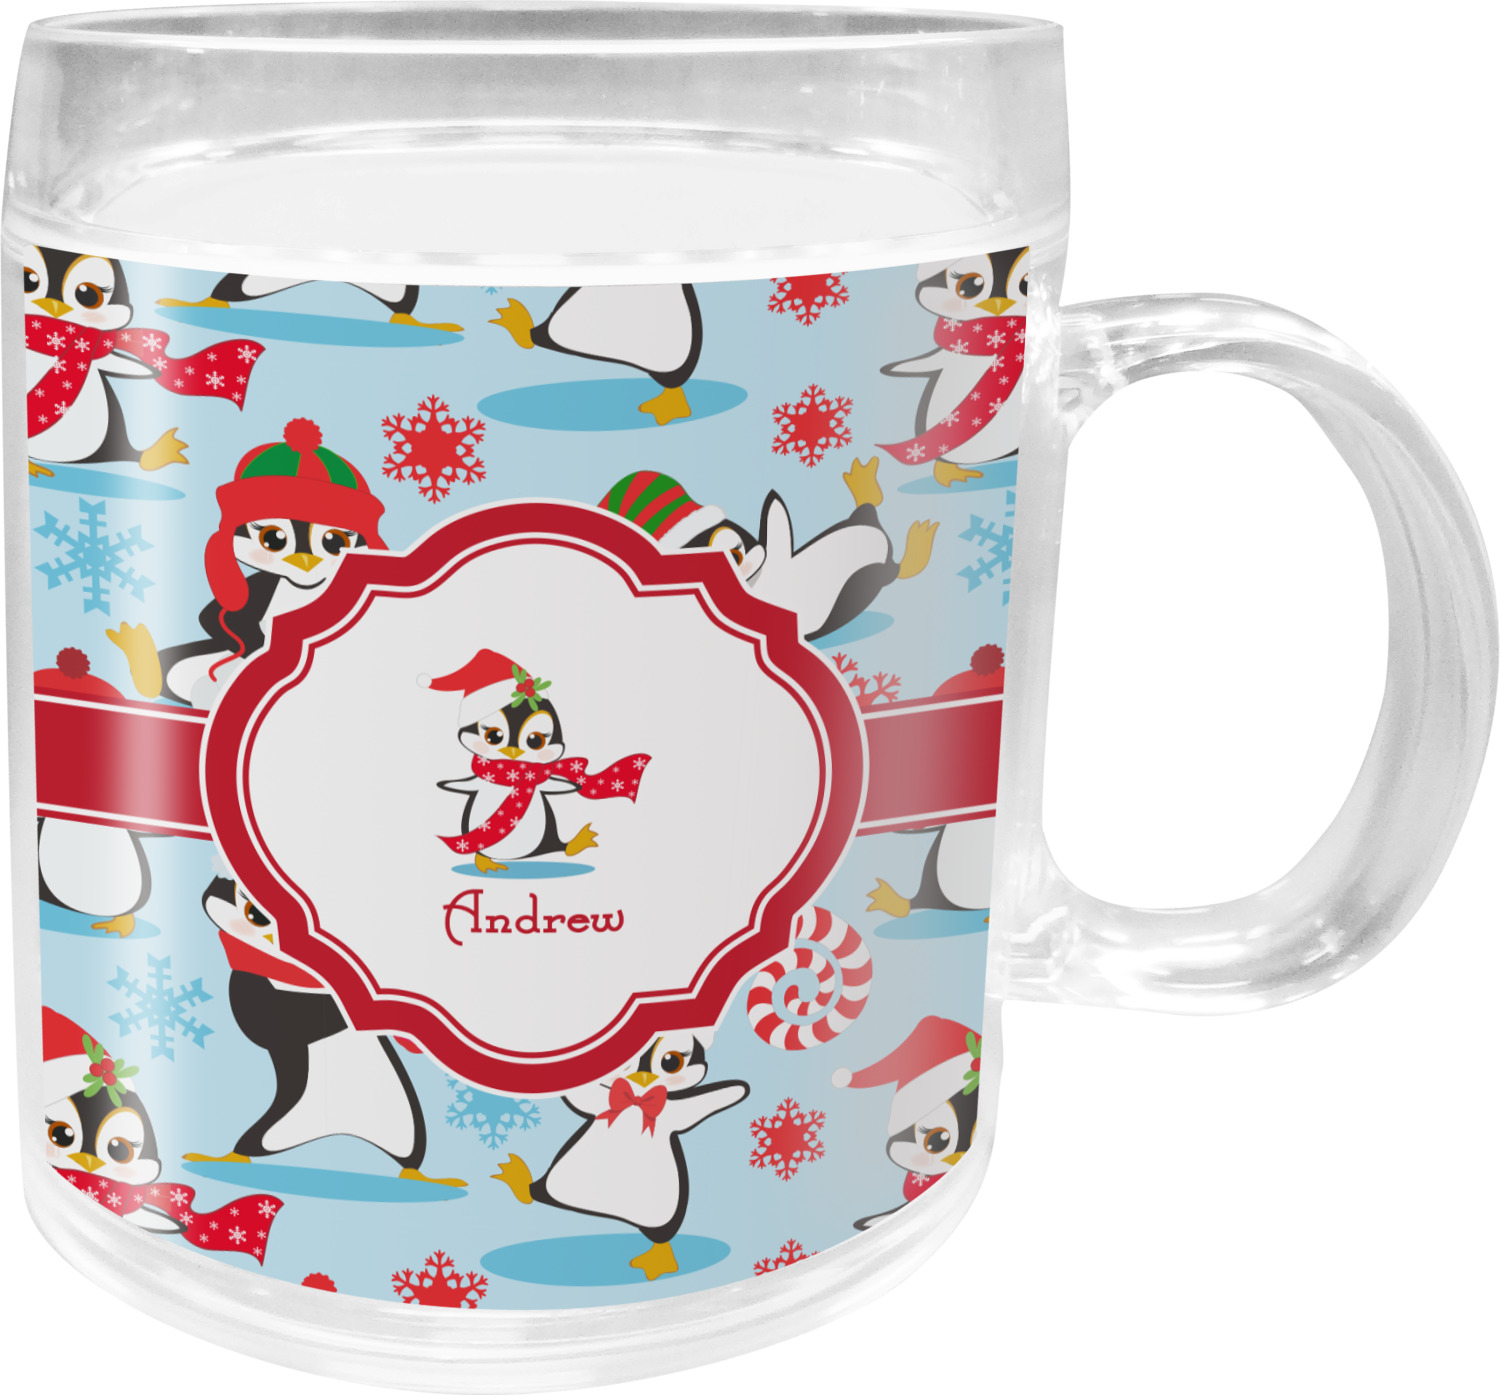 Christmas Penguins Acrylic Kids Mug (Personalized) - YouCustomizeIt